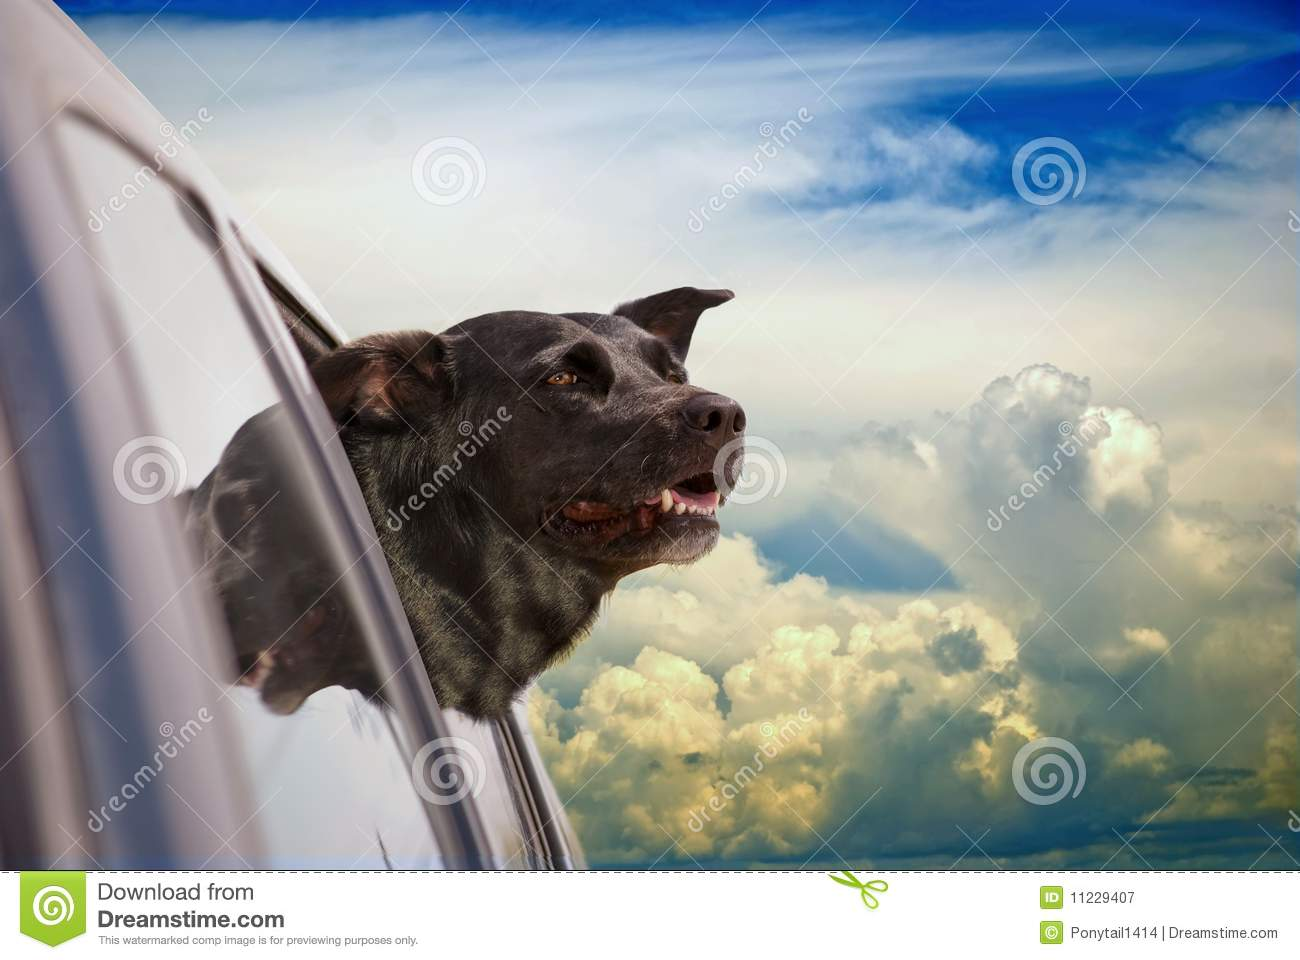 Happy dog going for a car ride in the clouds.